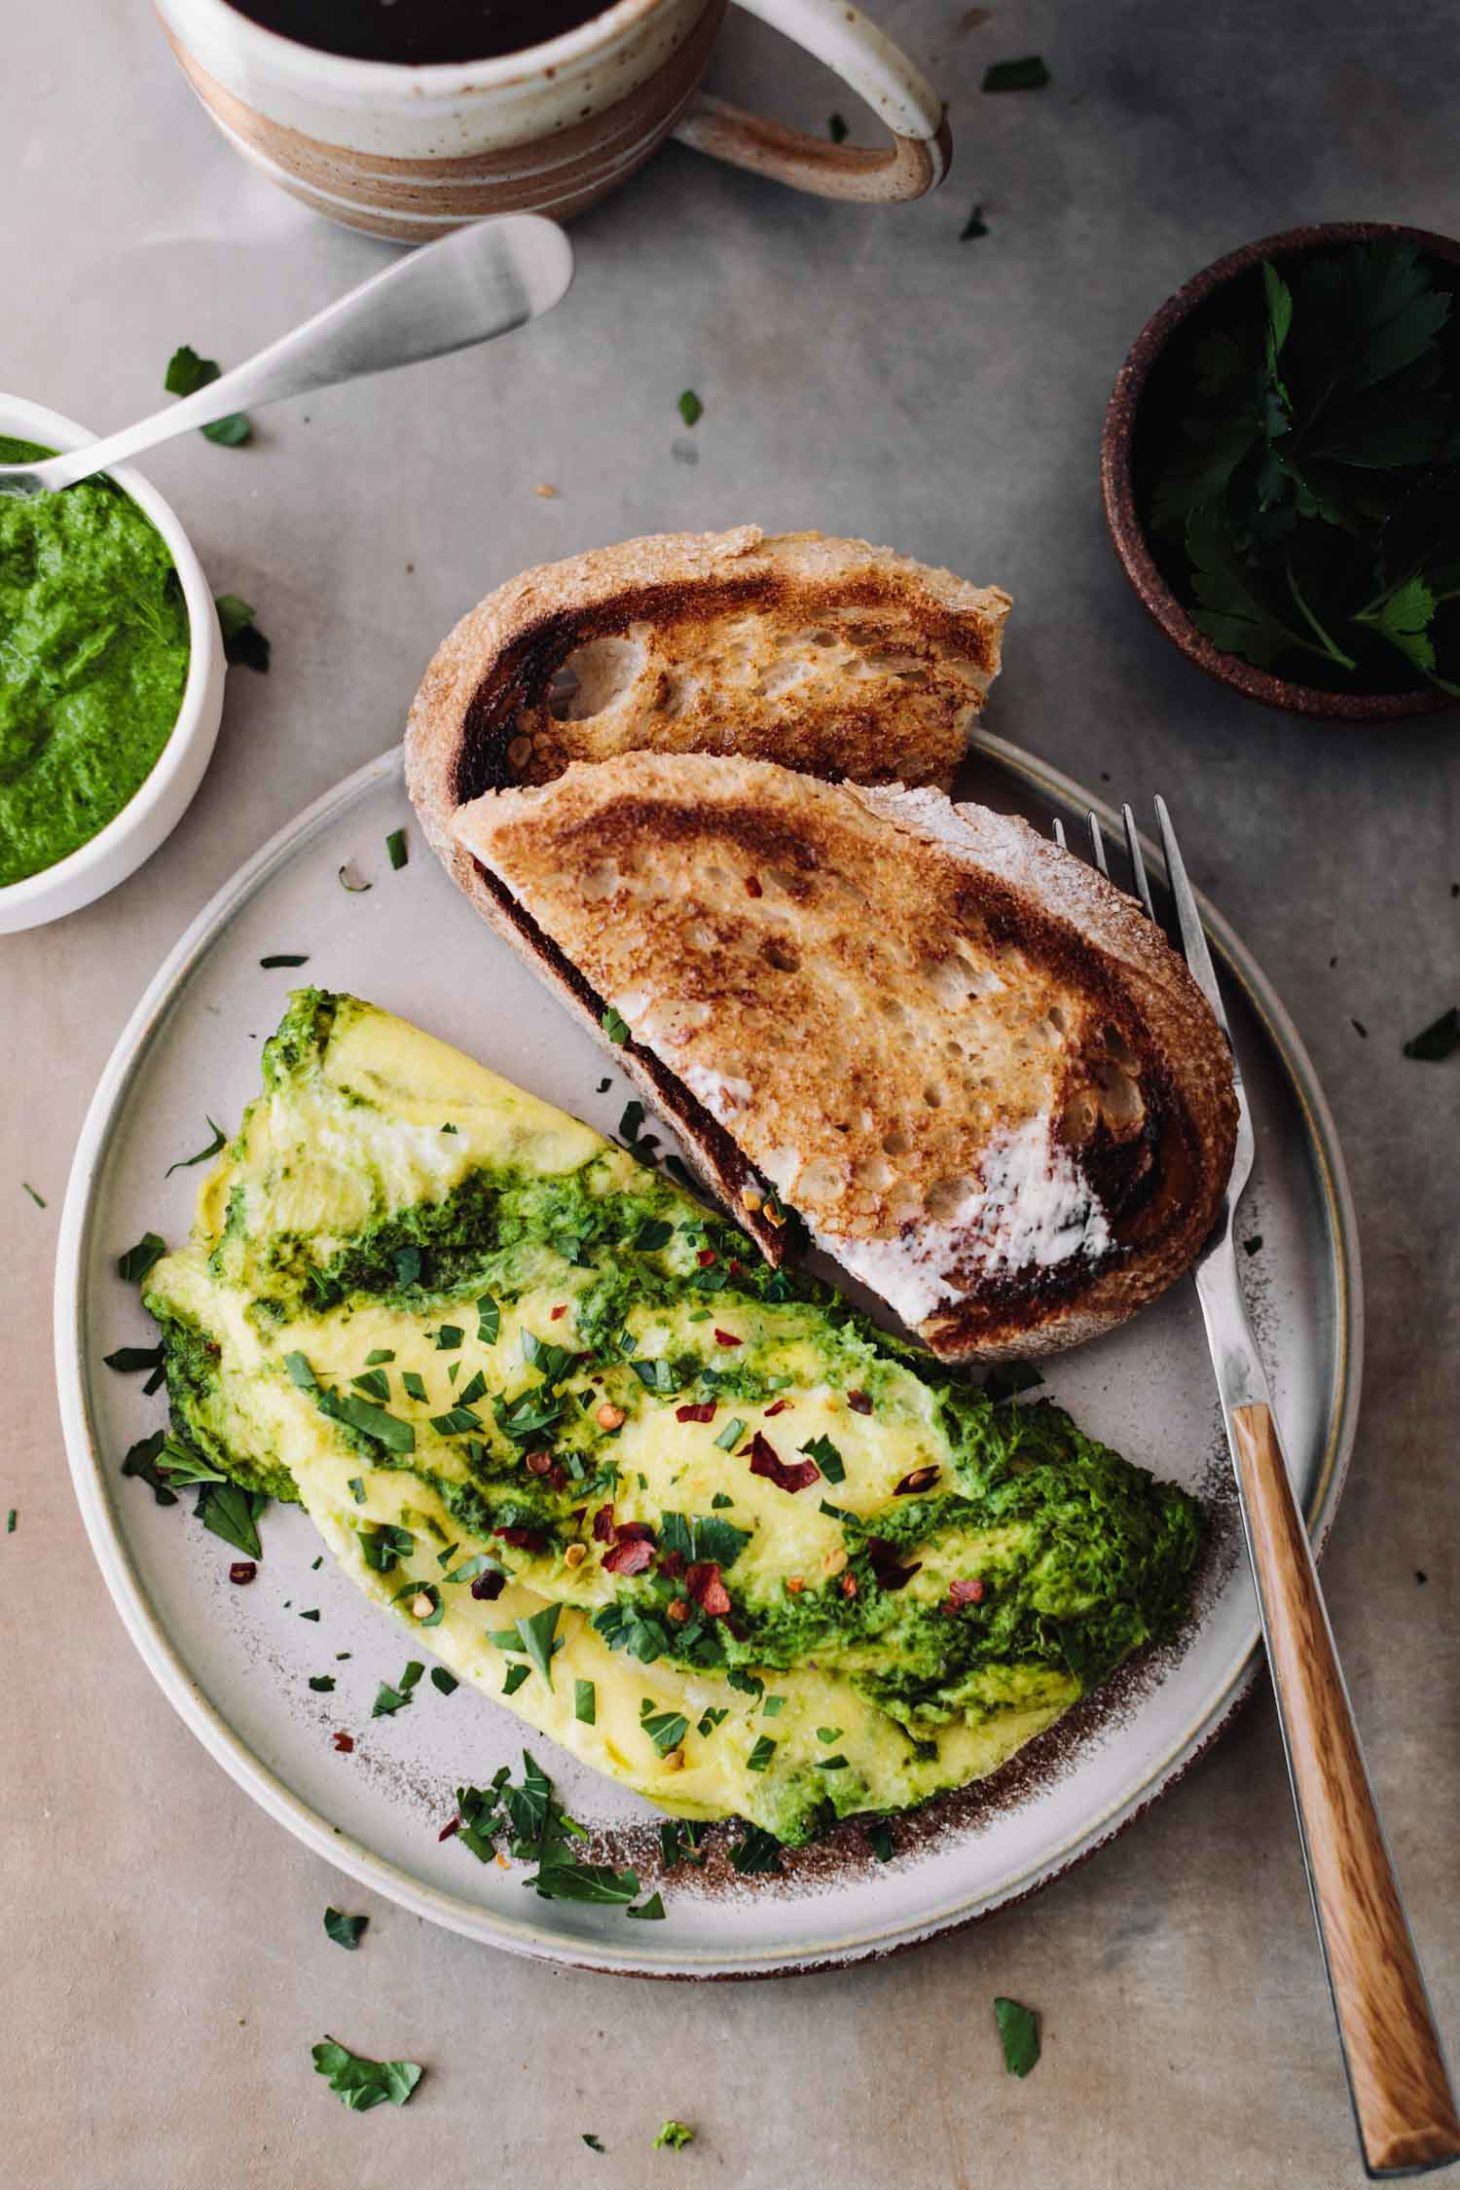 Herby Kale Omelette with Manchego Cheese